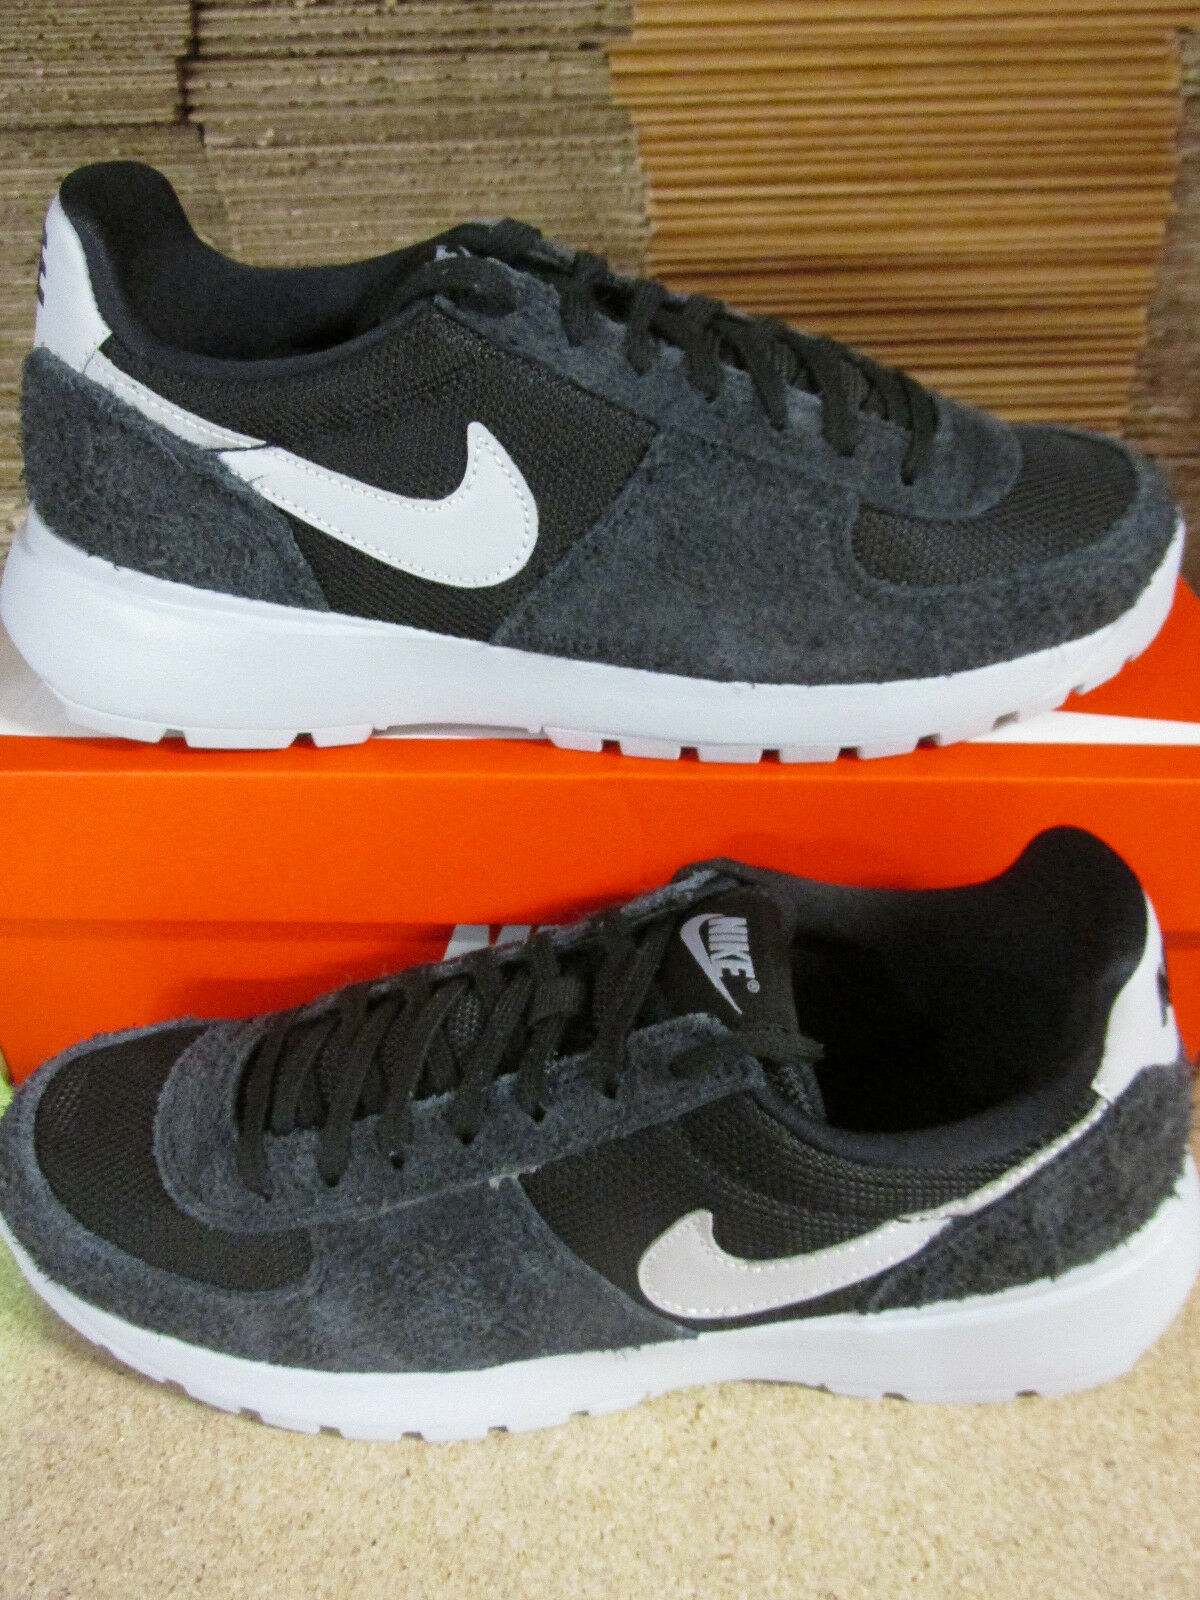 Nike Lavadome Ultra Mens Trainers 844574 002 Sneakers Shoes